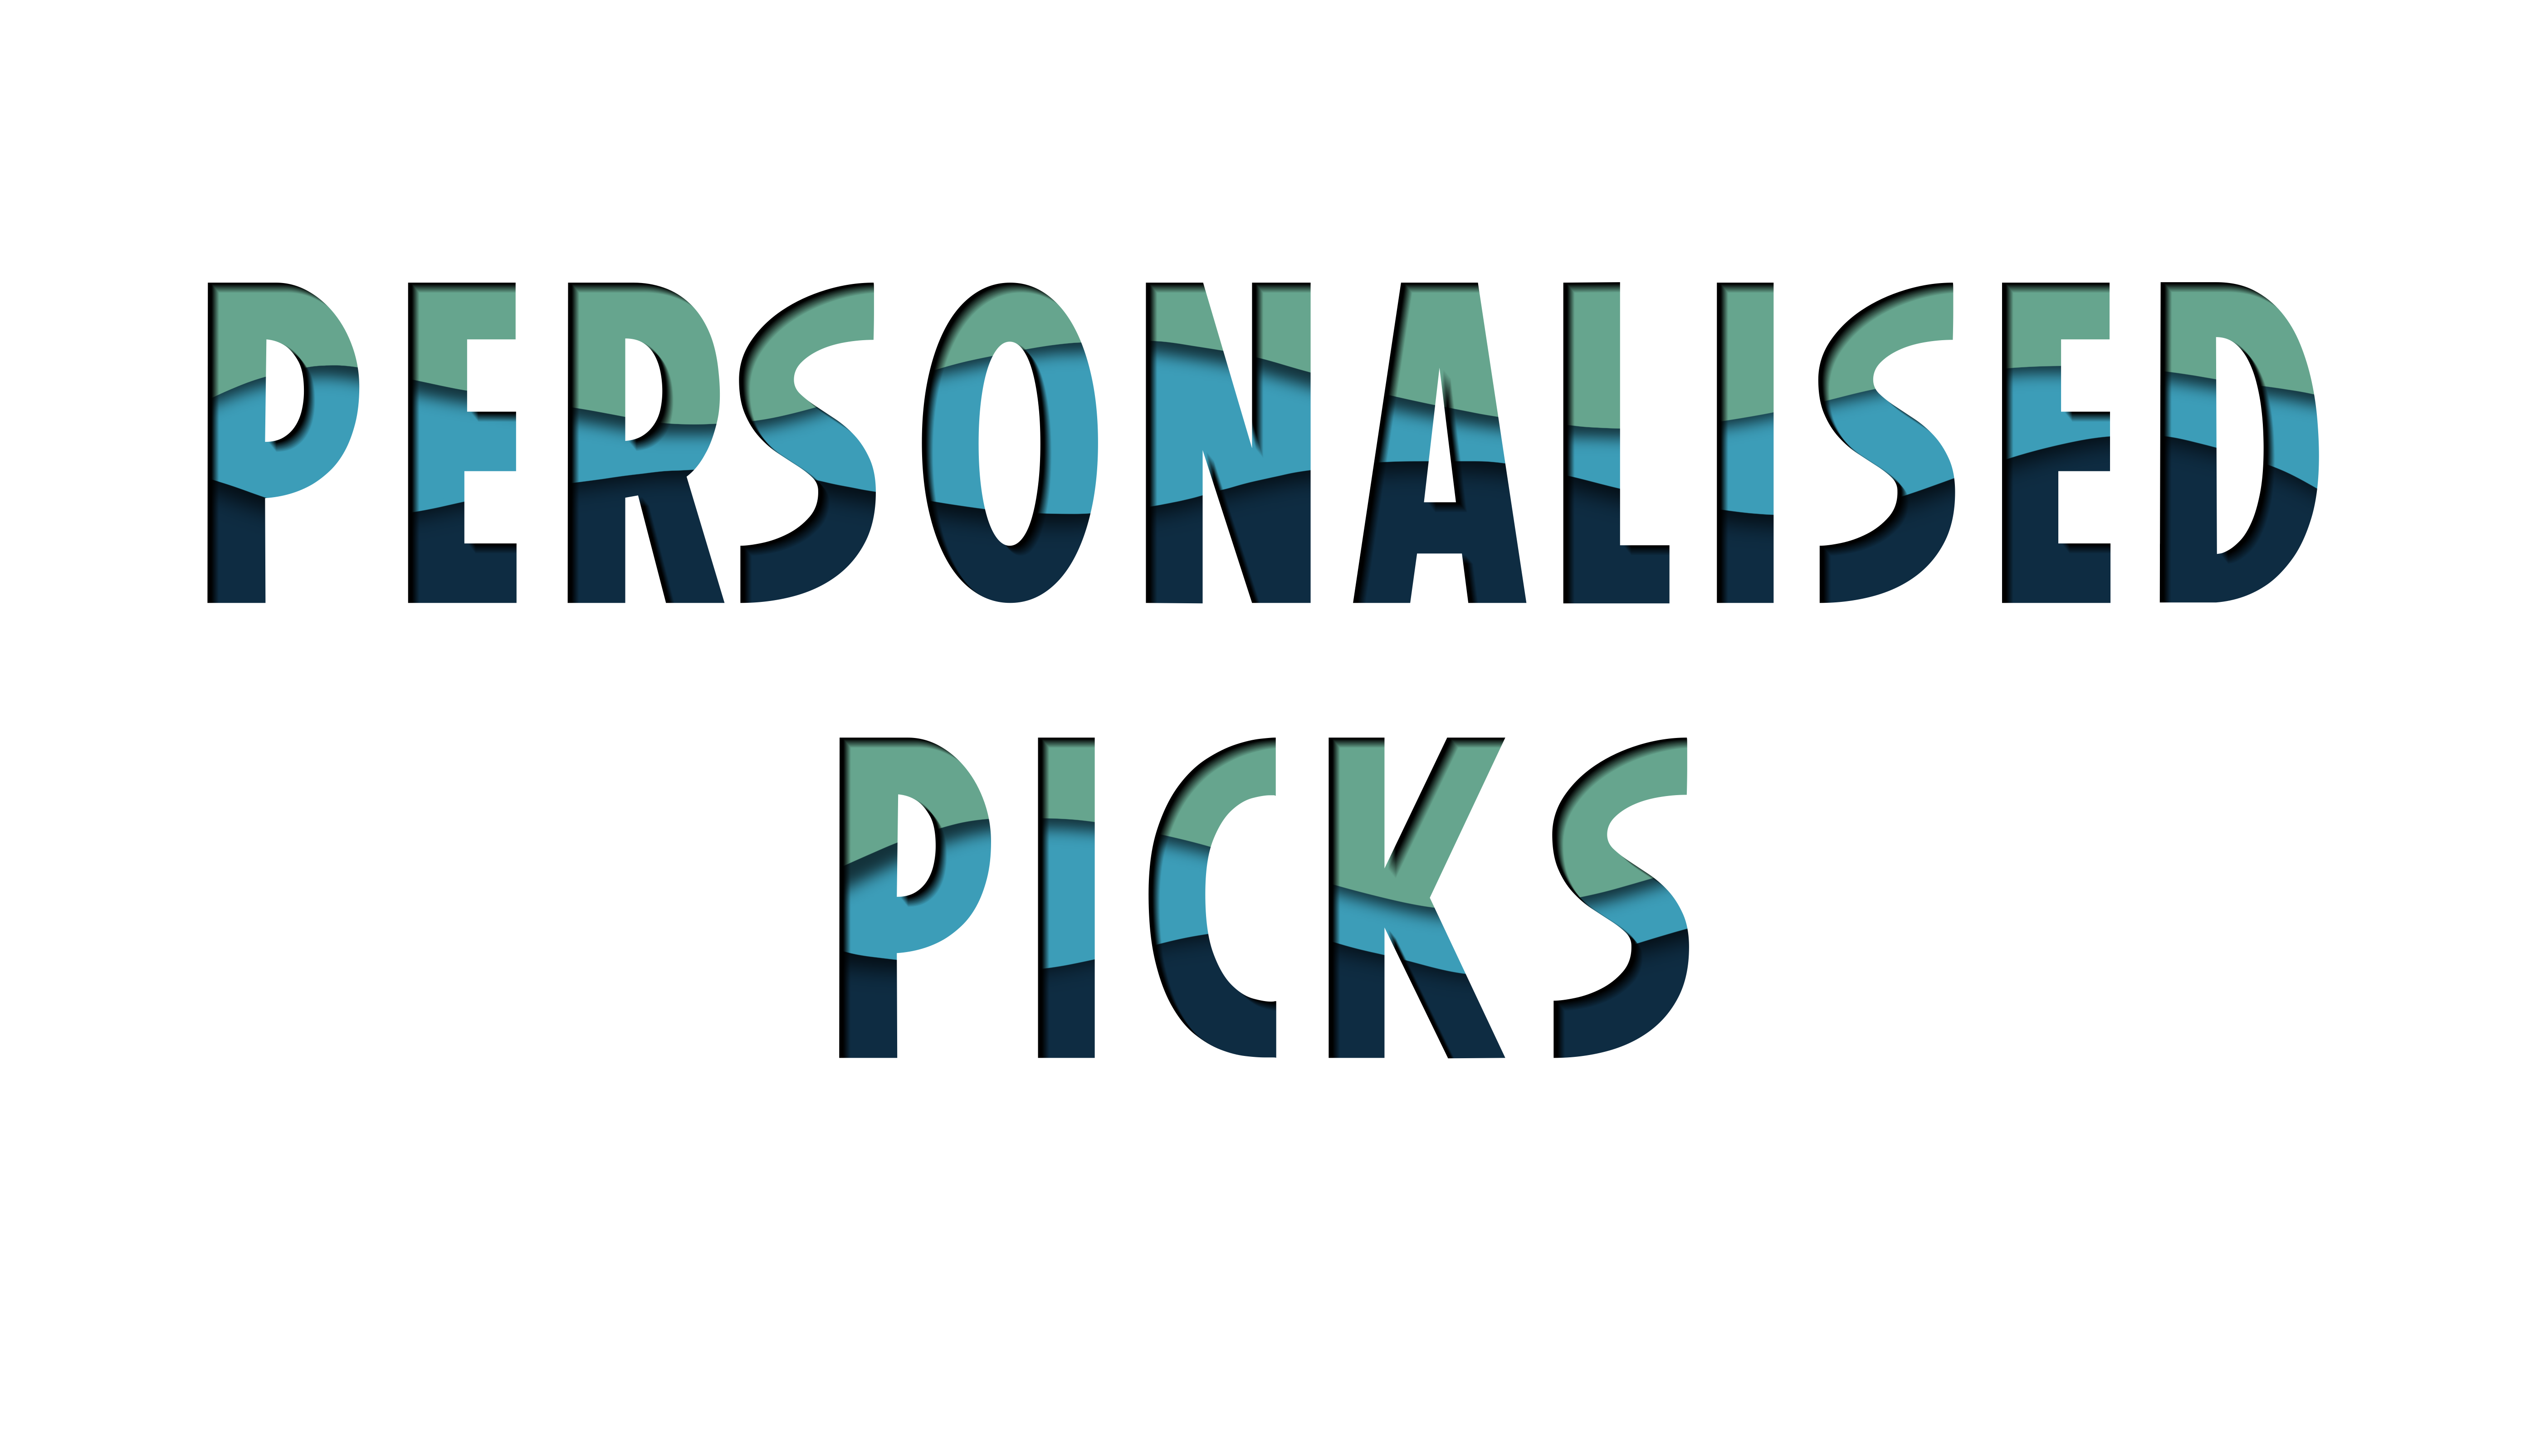 Personalised Picks thumbnail image.